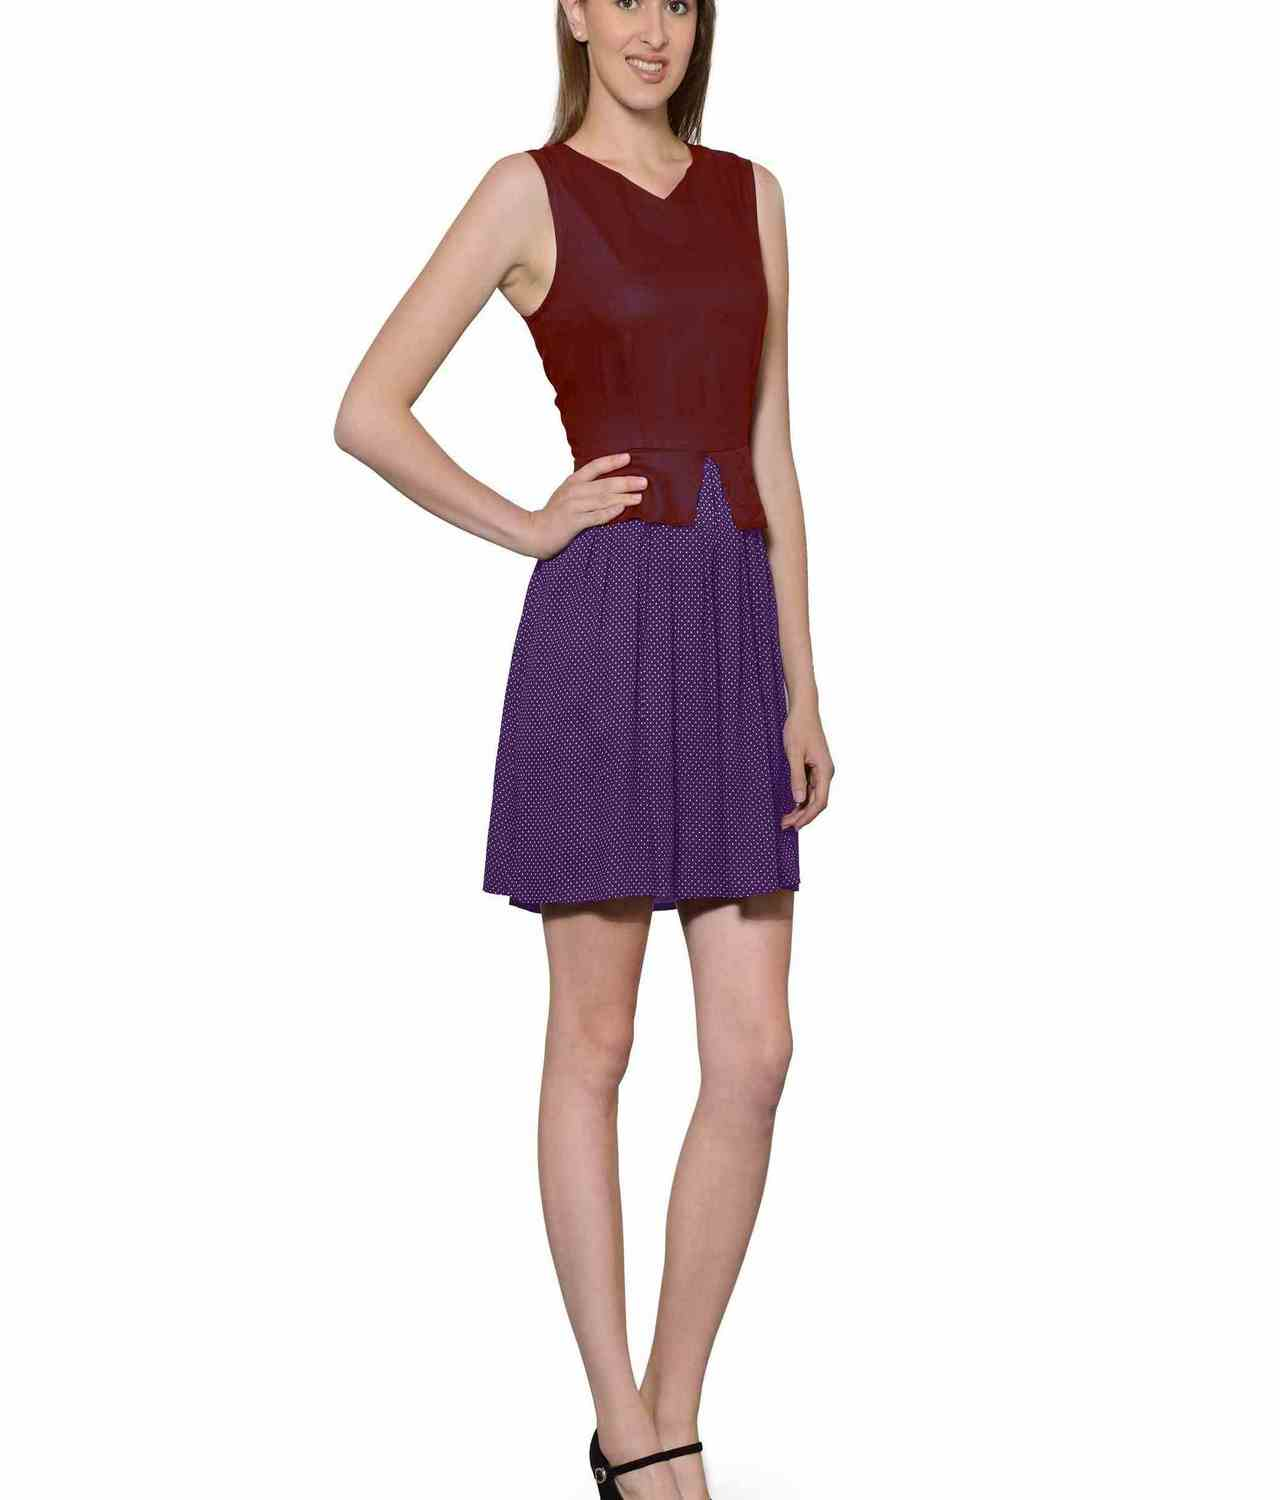 Top and Skirt Style Cocktail Mini Dress in Maroon:Purple Polka Dot